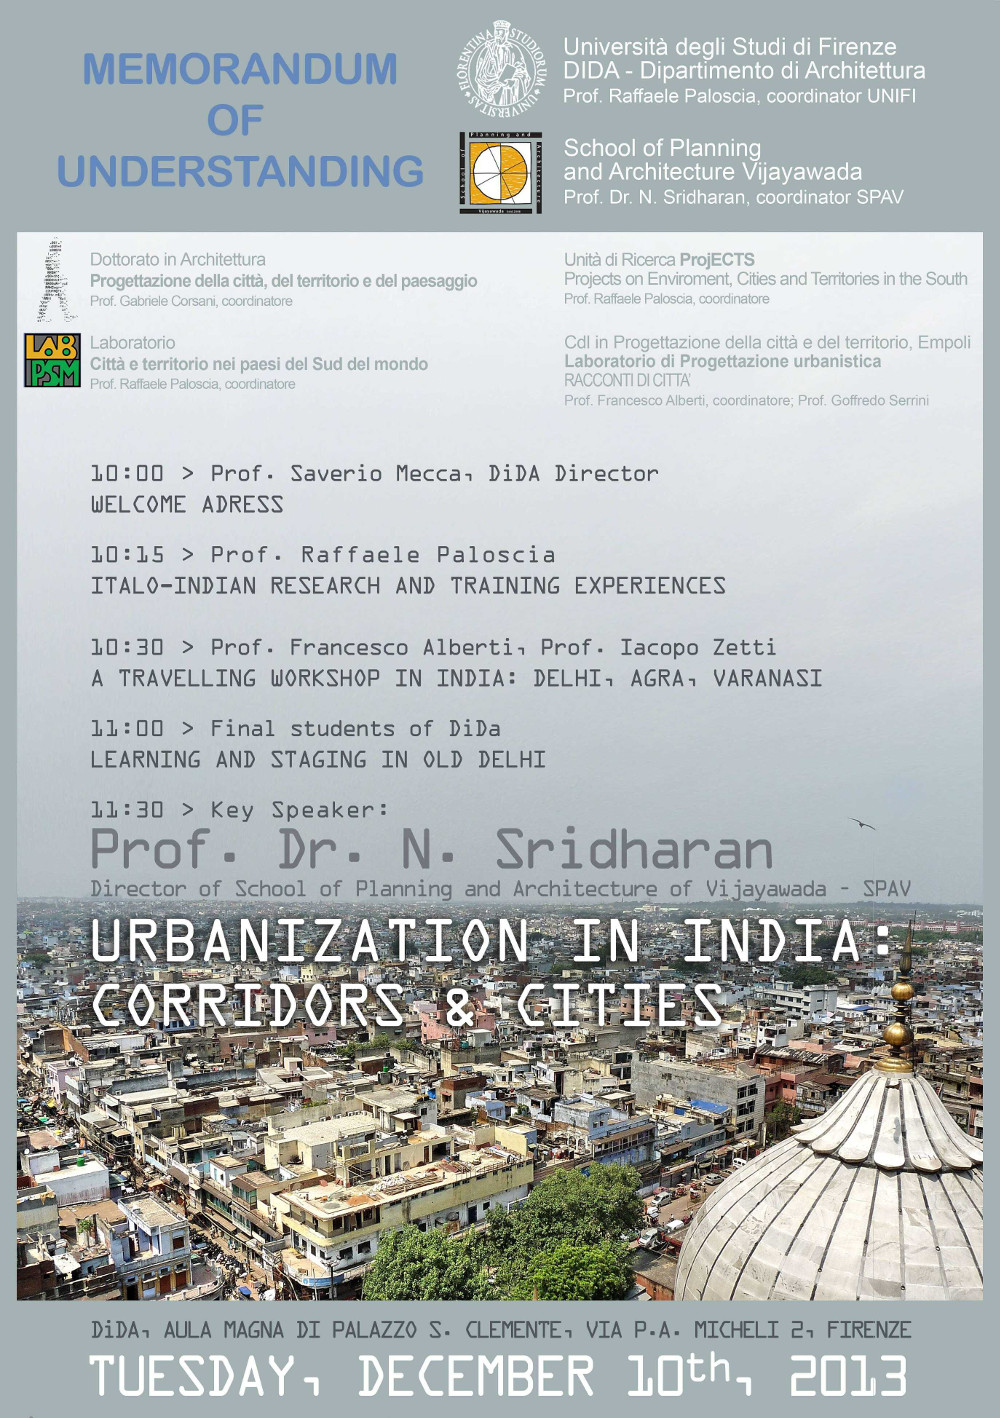 Urbanization in India: corridors & cities